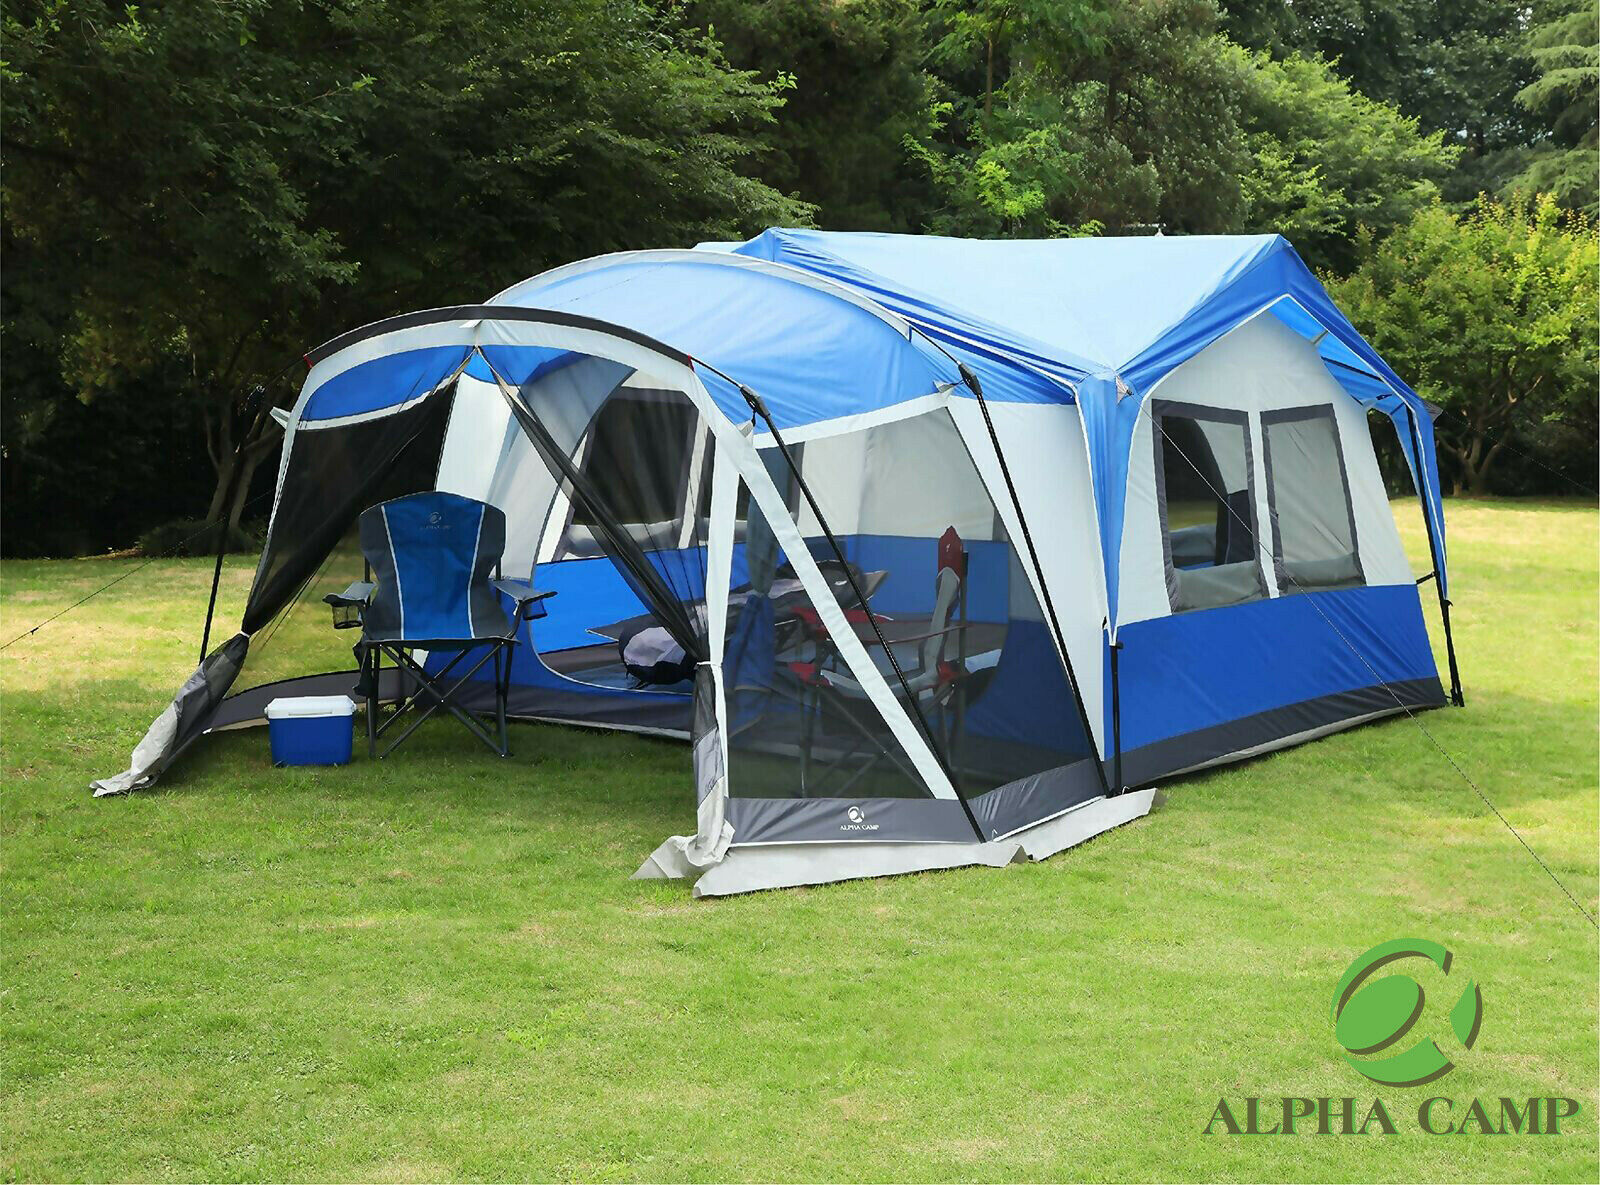 ALPHA CAMP 10-12 Person Family Camping Tent Screen Room Cabi